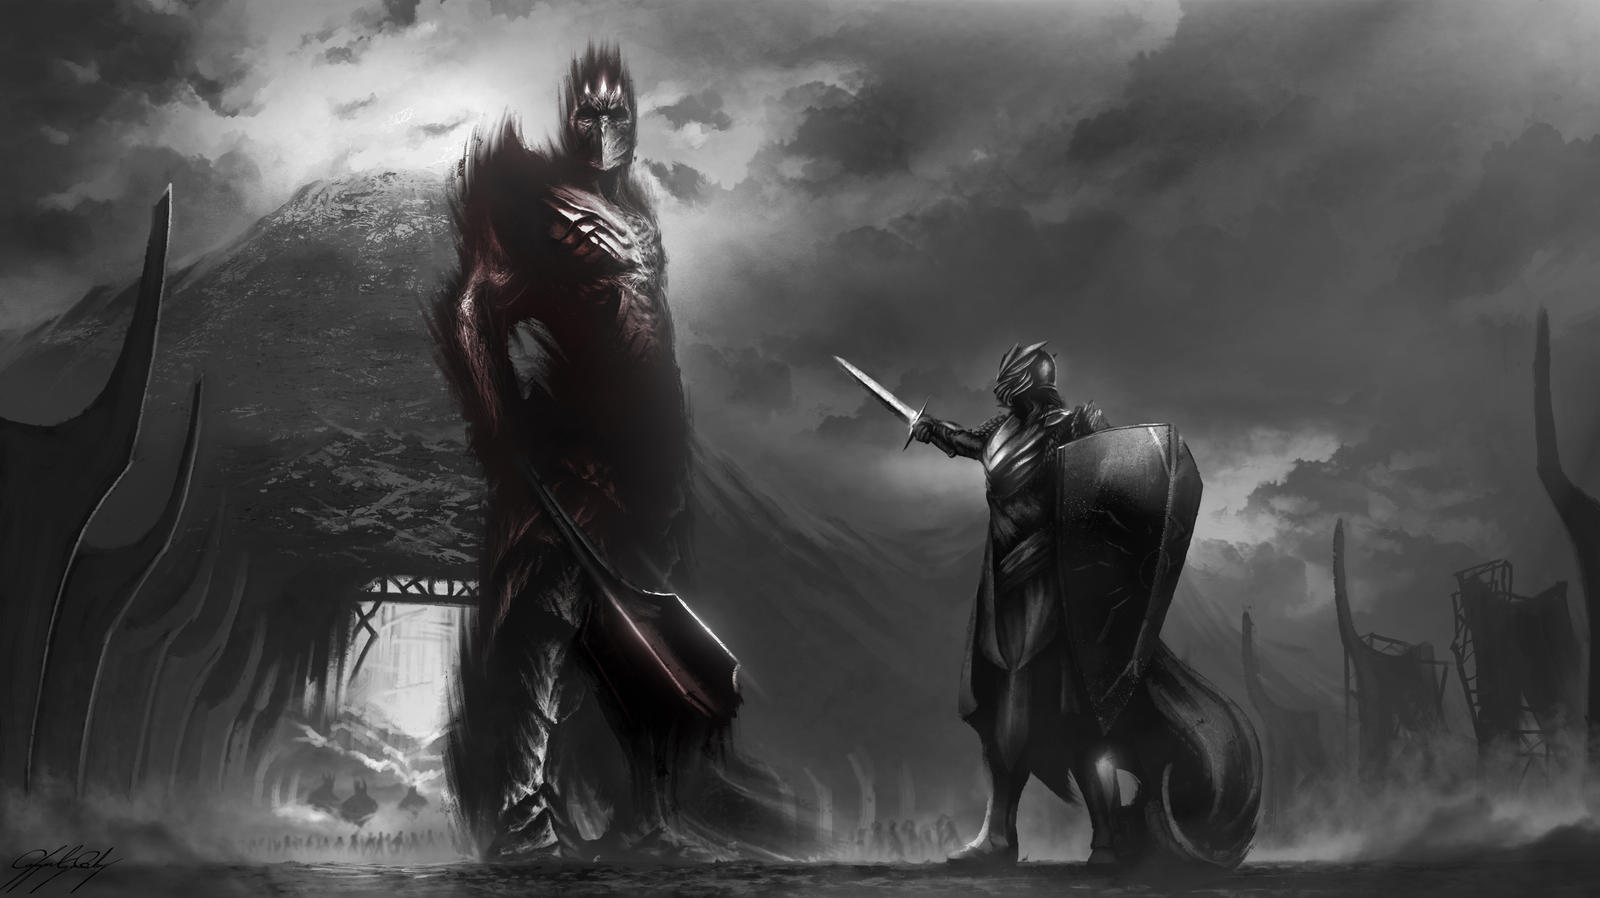 By the Gates Of Angband